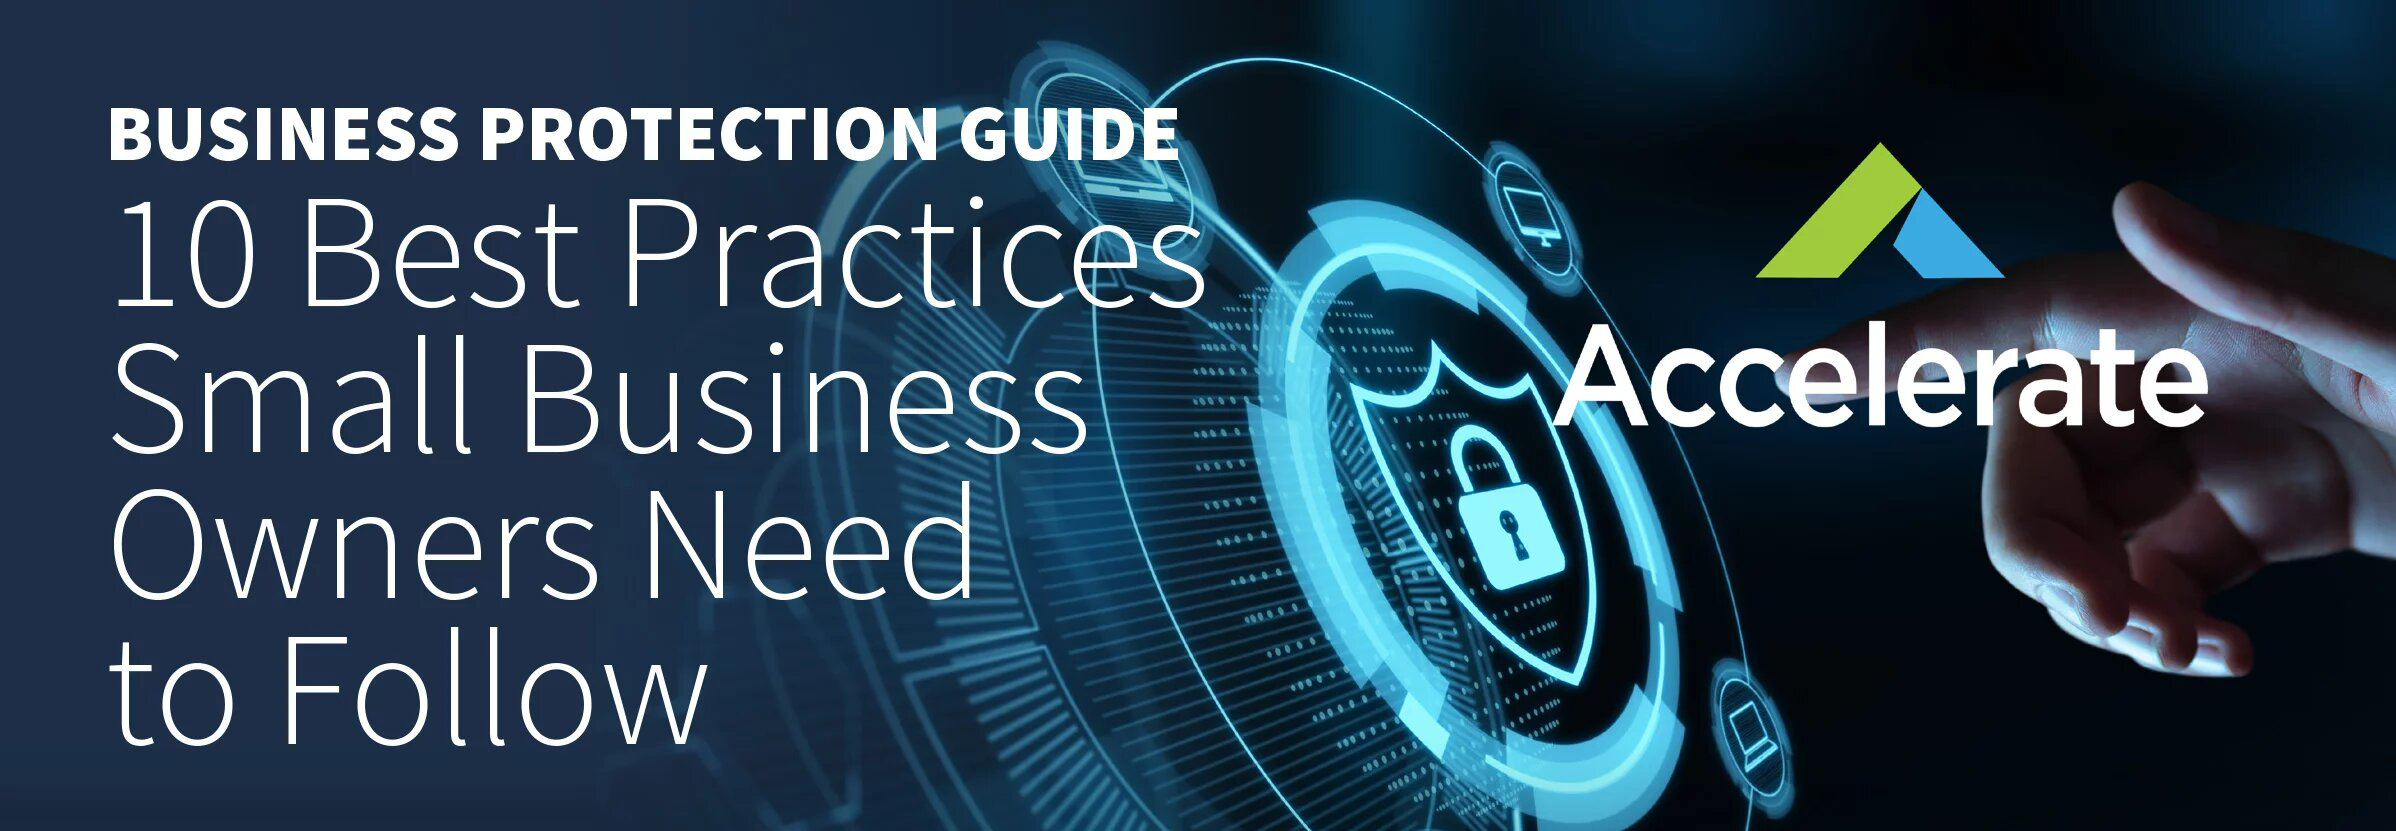 FREE Business Protection Guide!,